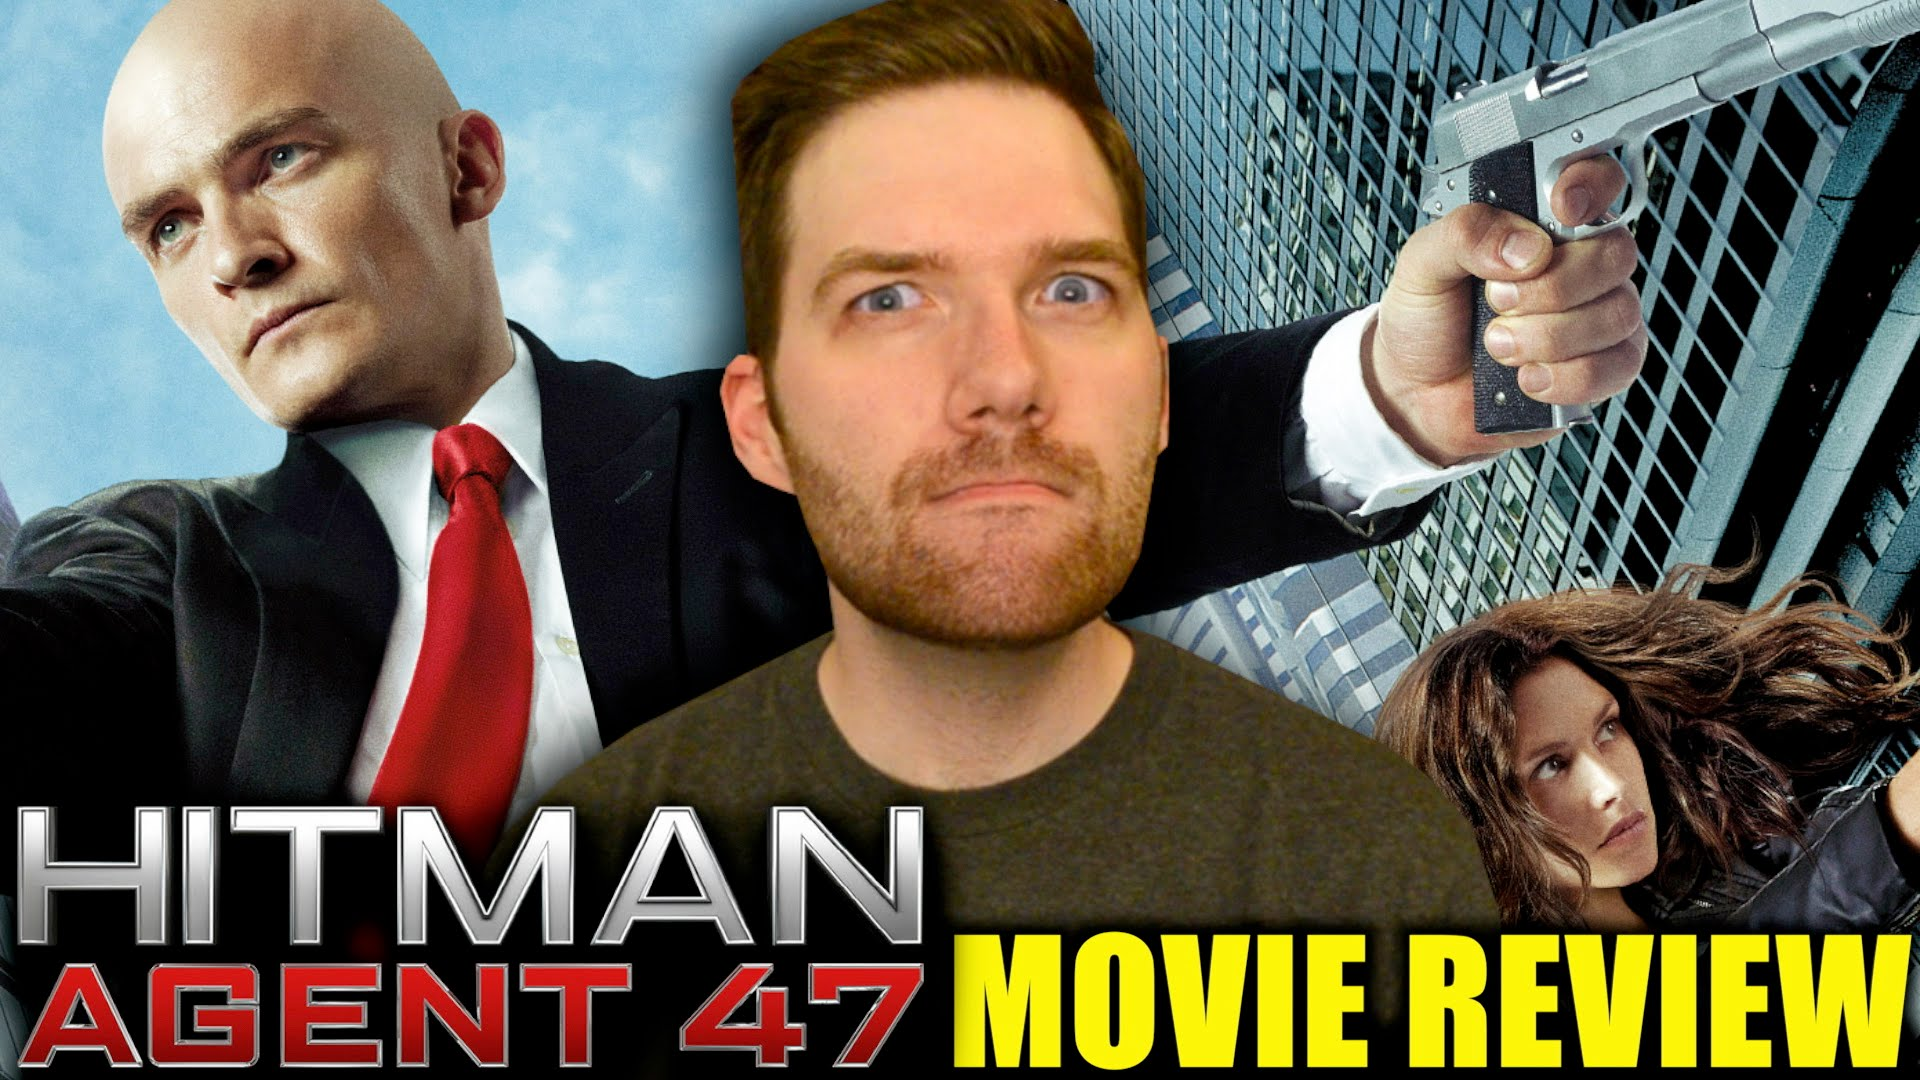 Chris Stuckmann Movie Reviews Hitman Agent 47 Tv Episode 2015